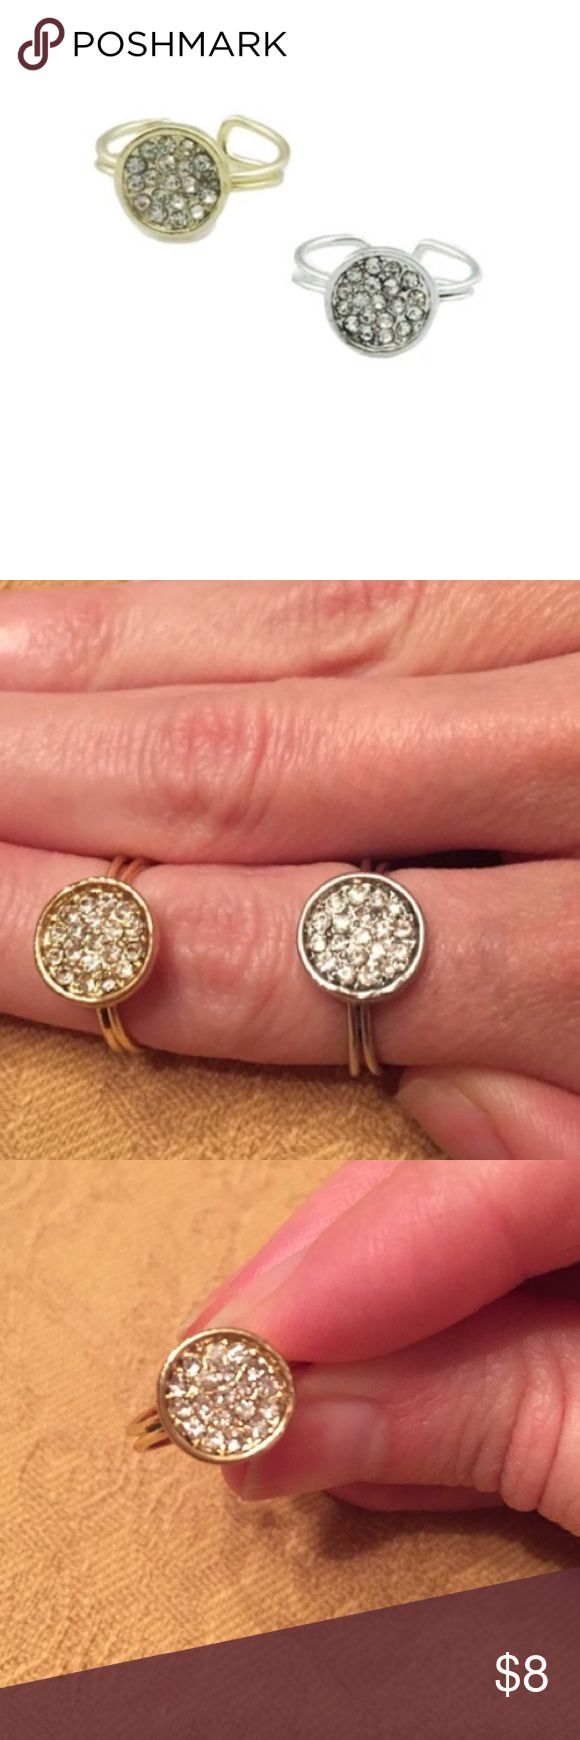 ⭐ONLY 2 SETS LEFT!!!⭐ ⭐Welcome to my boutique closet⭐Please visit my pre-loved & NWT closet @nmmulkey⭐T&J Designs Silver & Gold Circle rings⭐Price includes 1 silver & 1 gold ring⭐Adjustable⭐First picture courtesy of T&J designs⭐Please use the offer button⭐I WILL NOT respond to offers in the comments⭐🚫NO TRADES🚫 T&J Designs Jewelry Rings